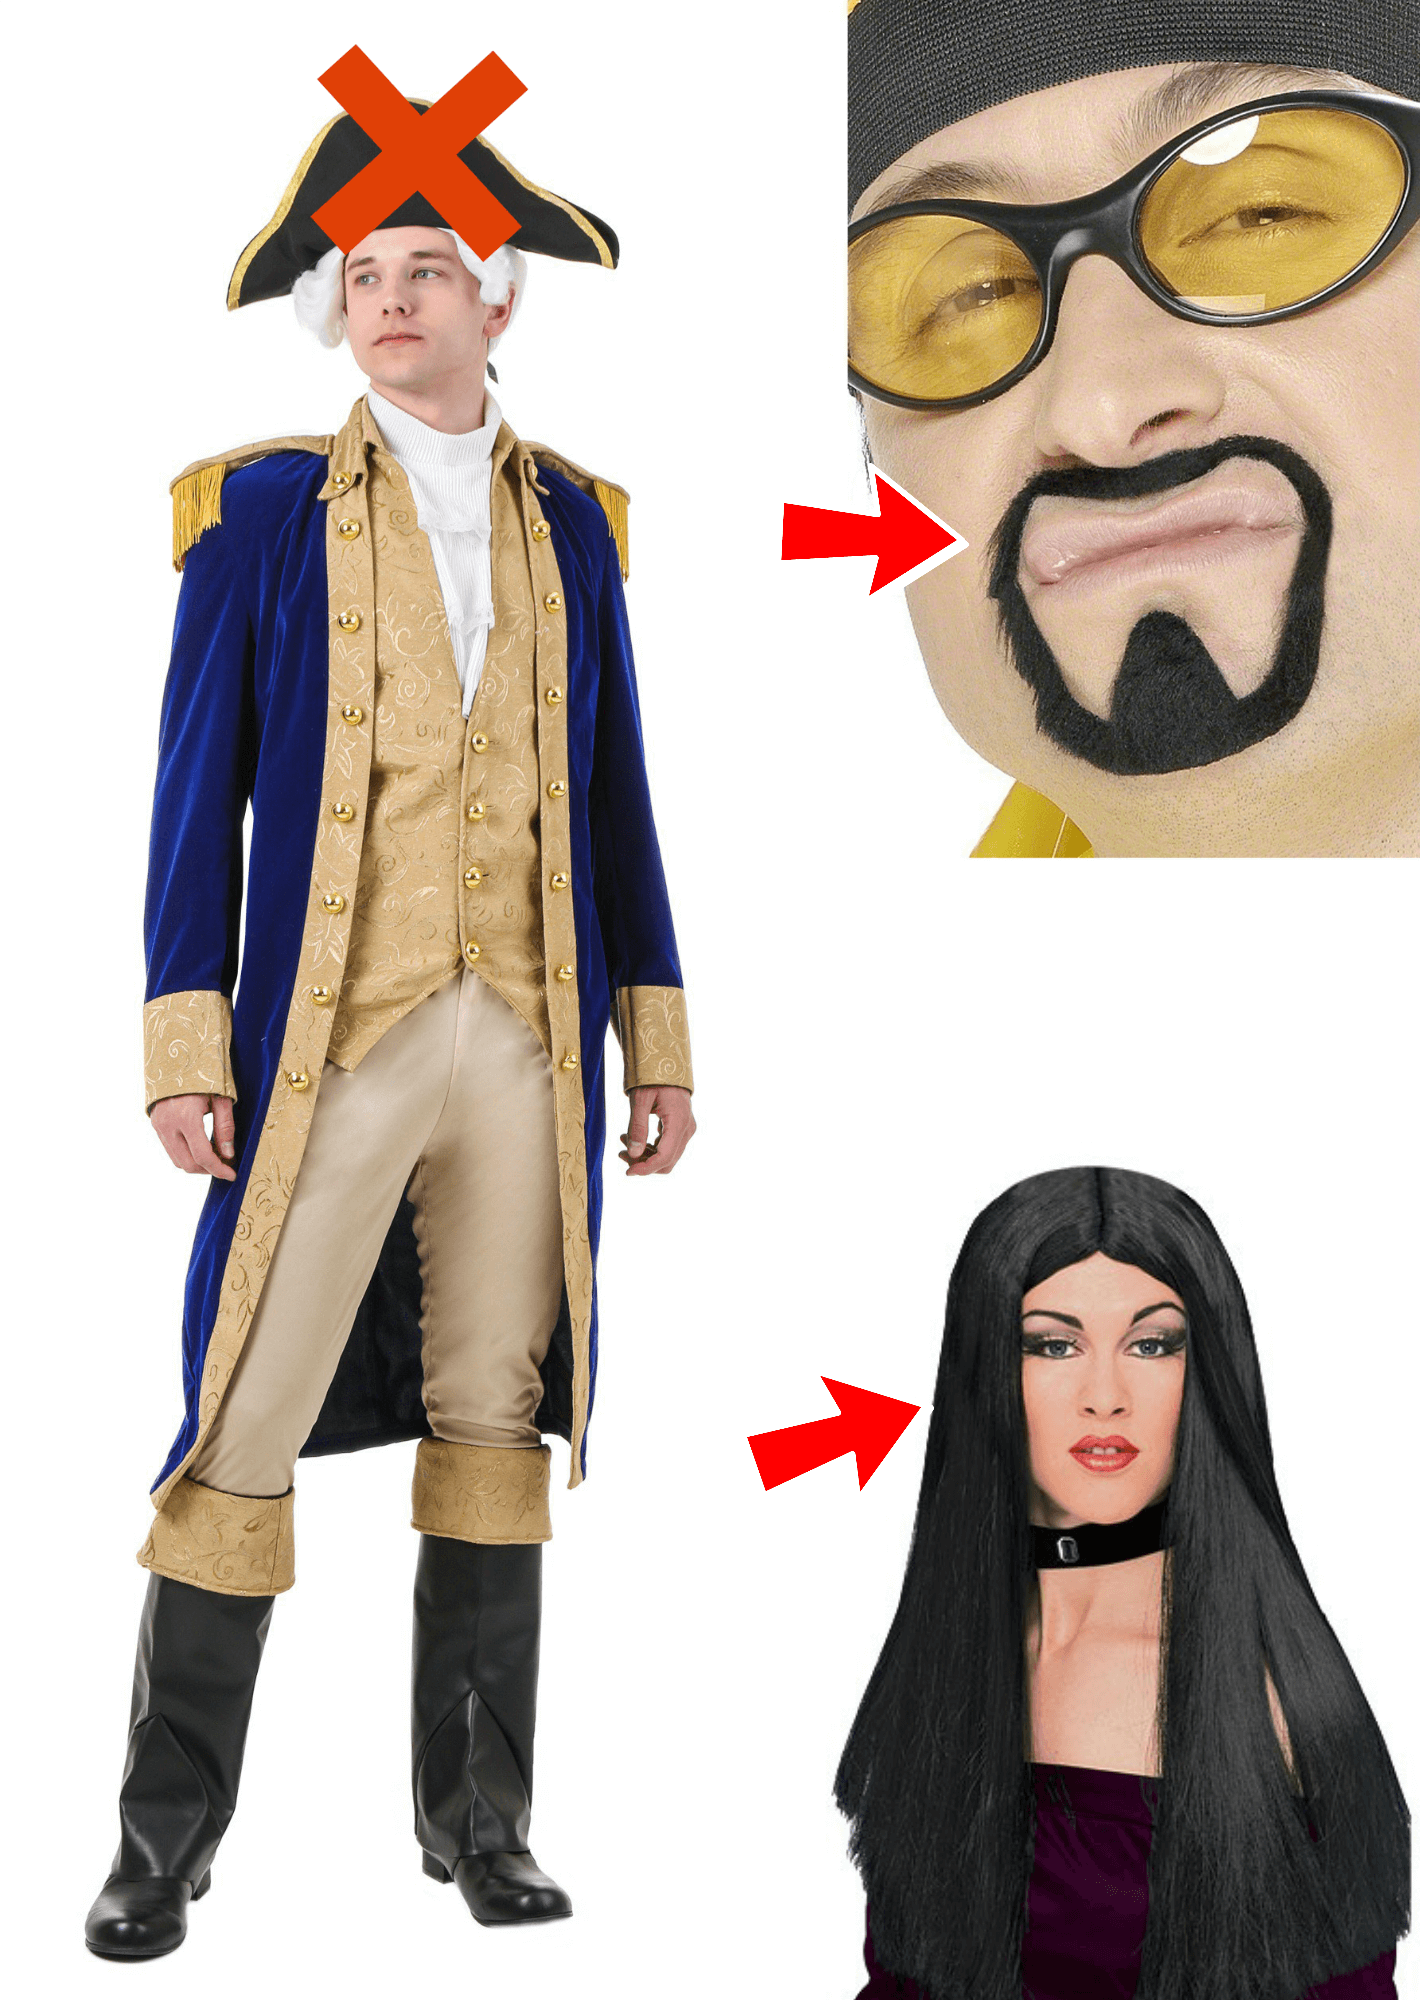 Alexander Hamilton Halloween Costume  sc 1 st  Halloween Costumes : homemade adults halloween costumes  - Germanpascual.Com